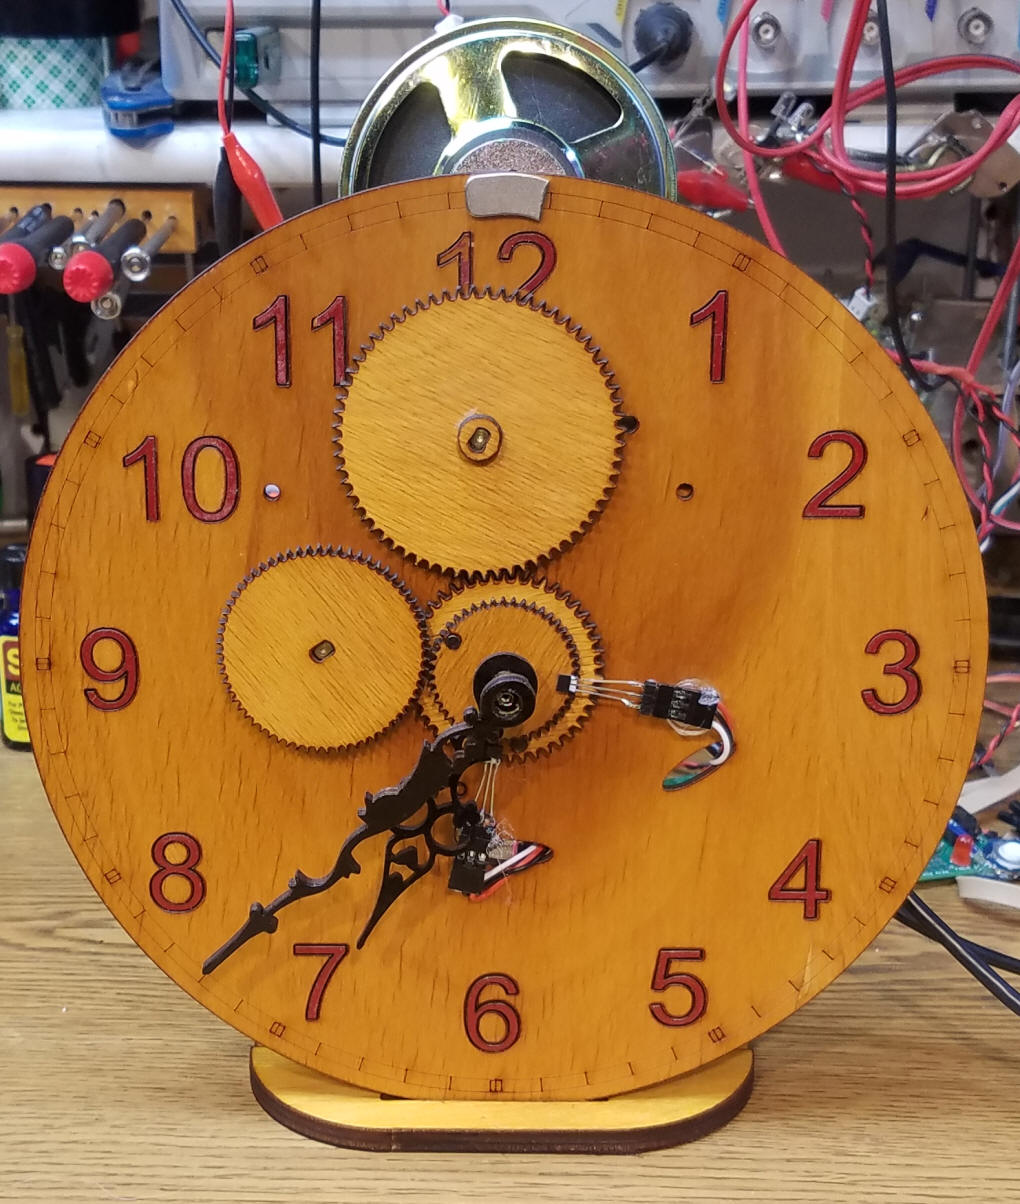 Picture of Arduino WiFi Set Clock With Analog Hands